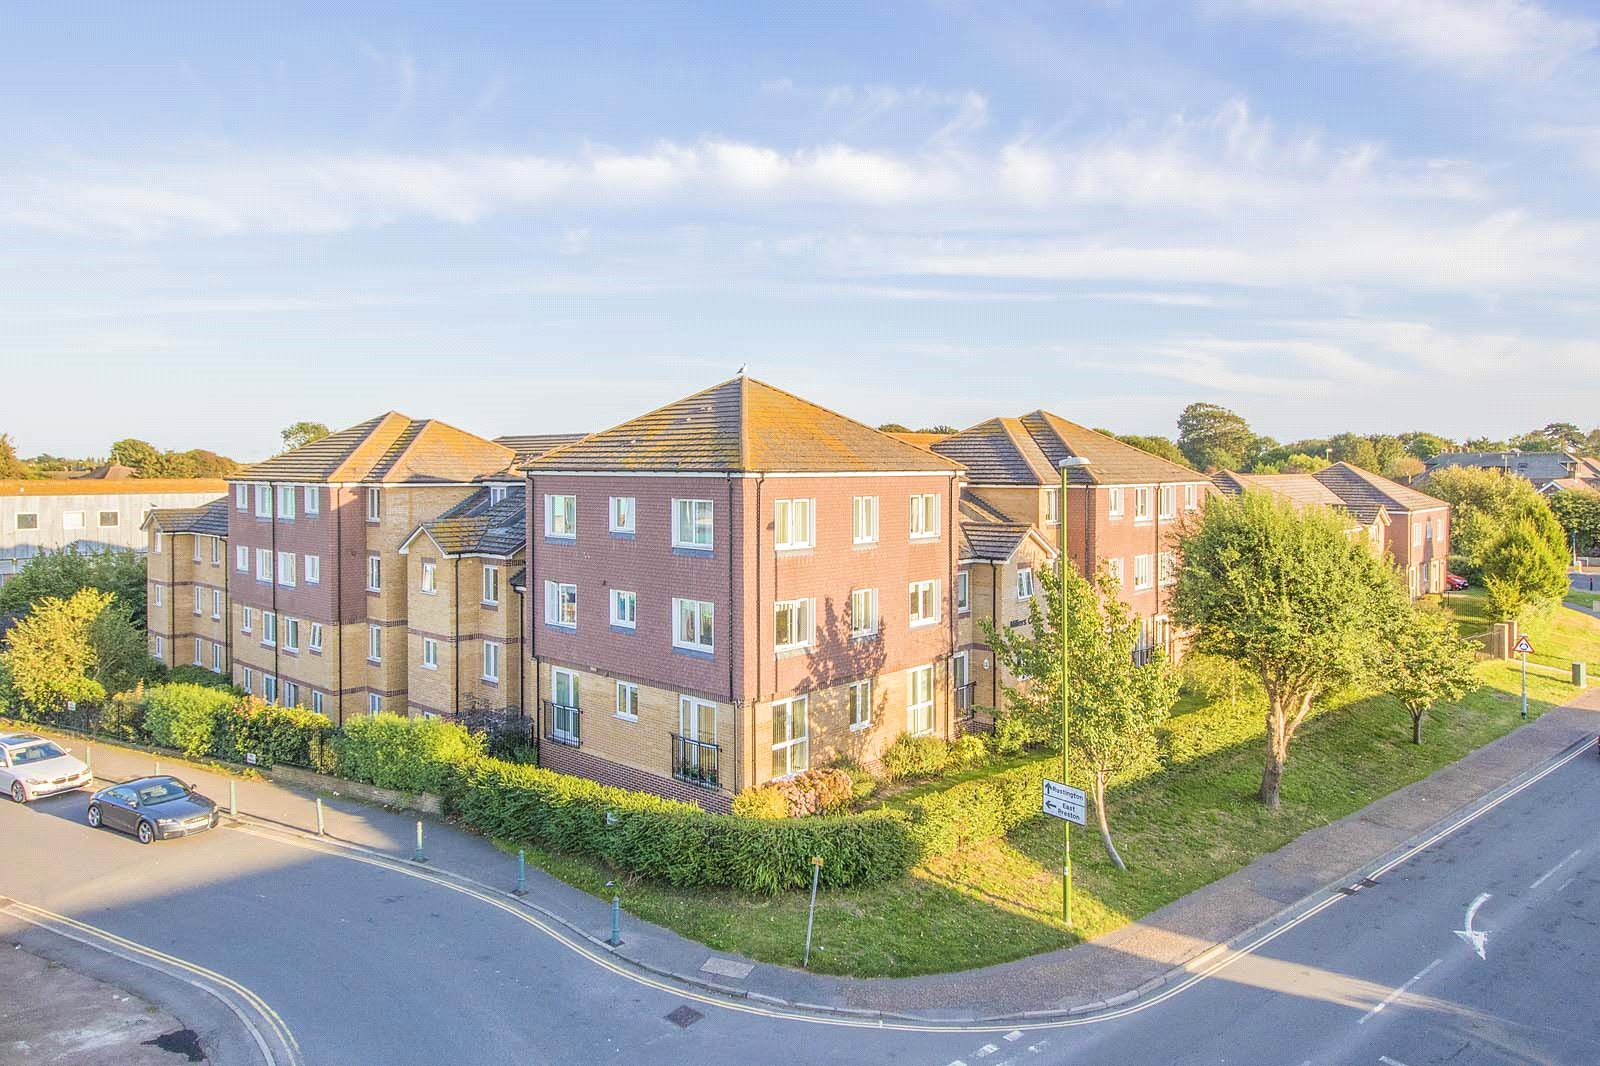 2 bed apartment for sale in Milliers Court, Worthing Road, East Preston, BN16